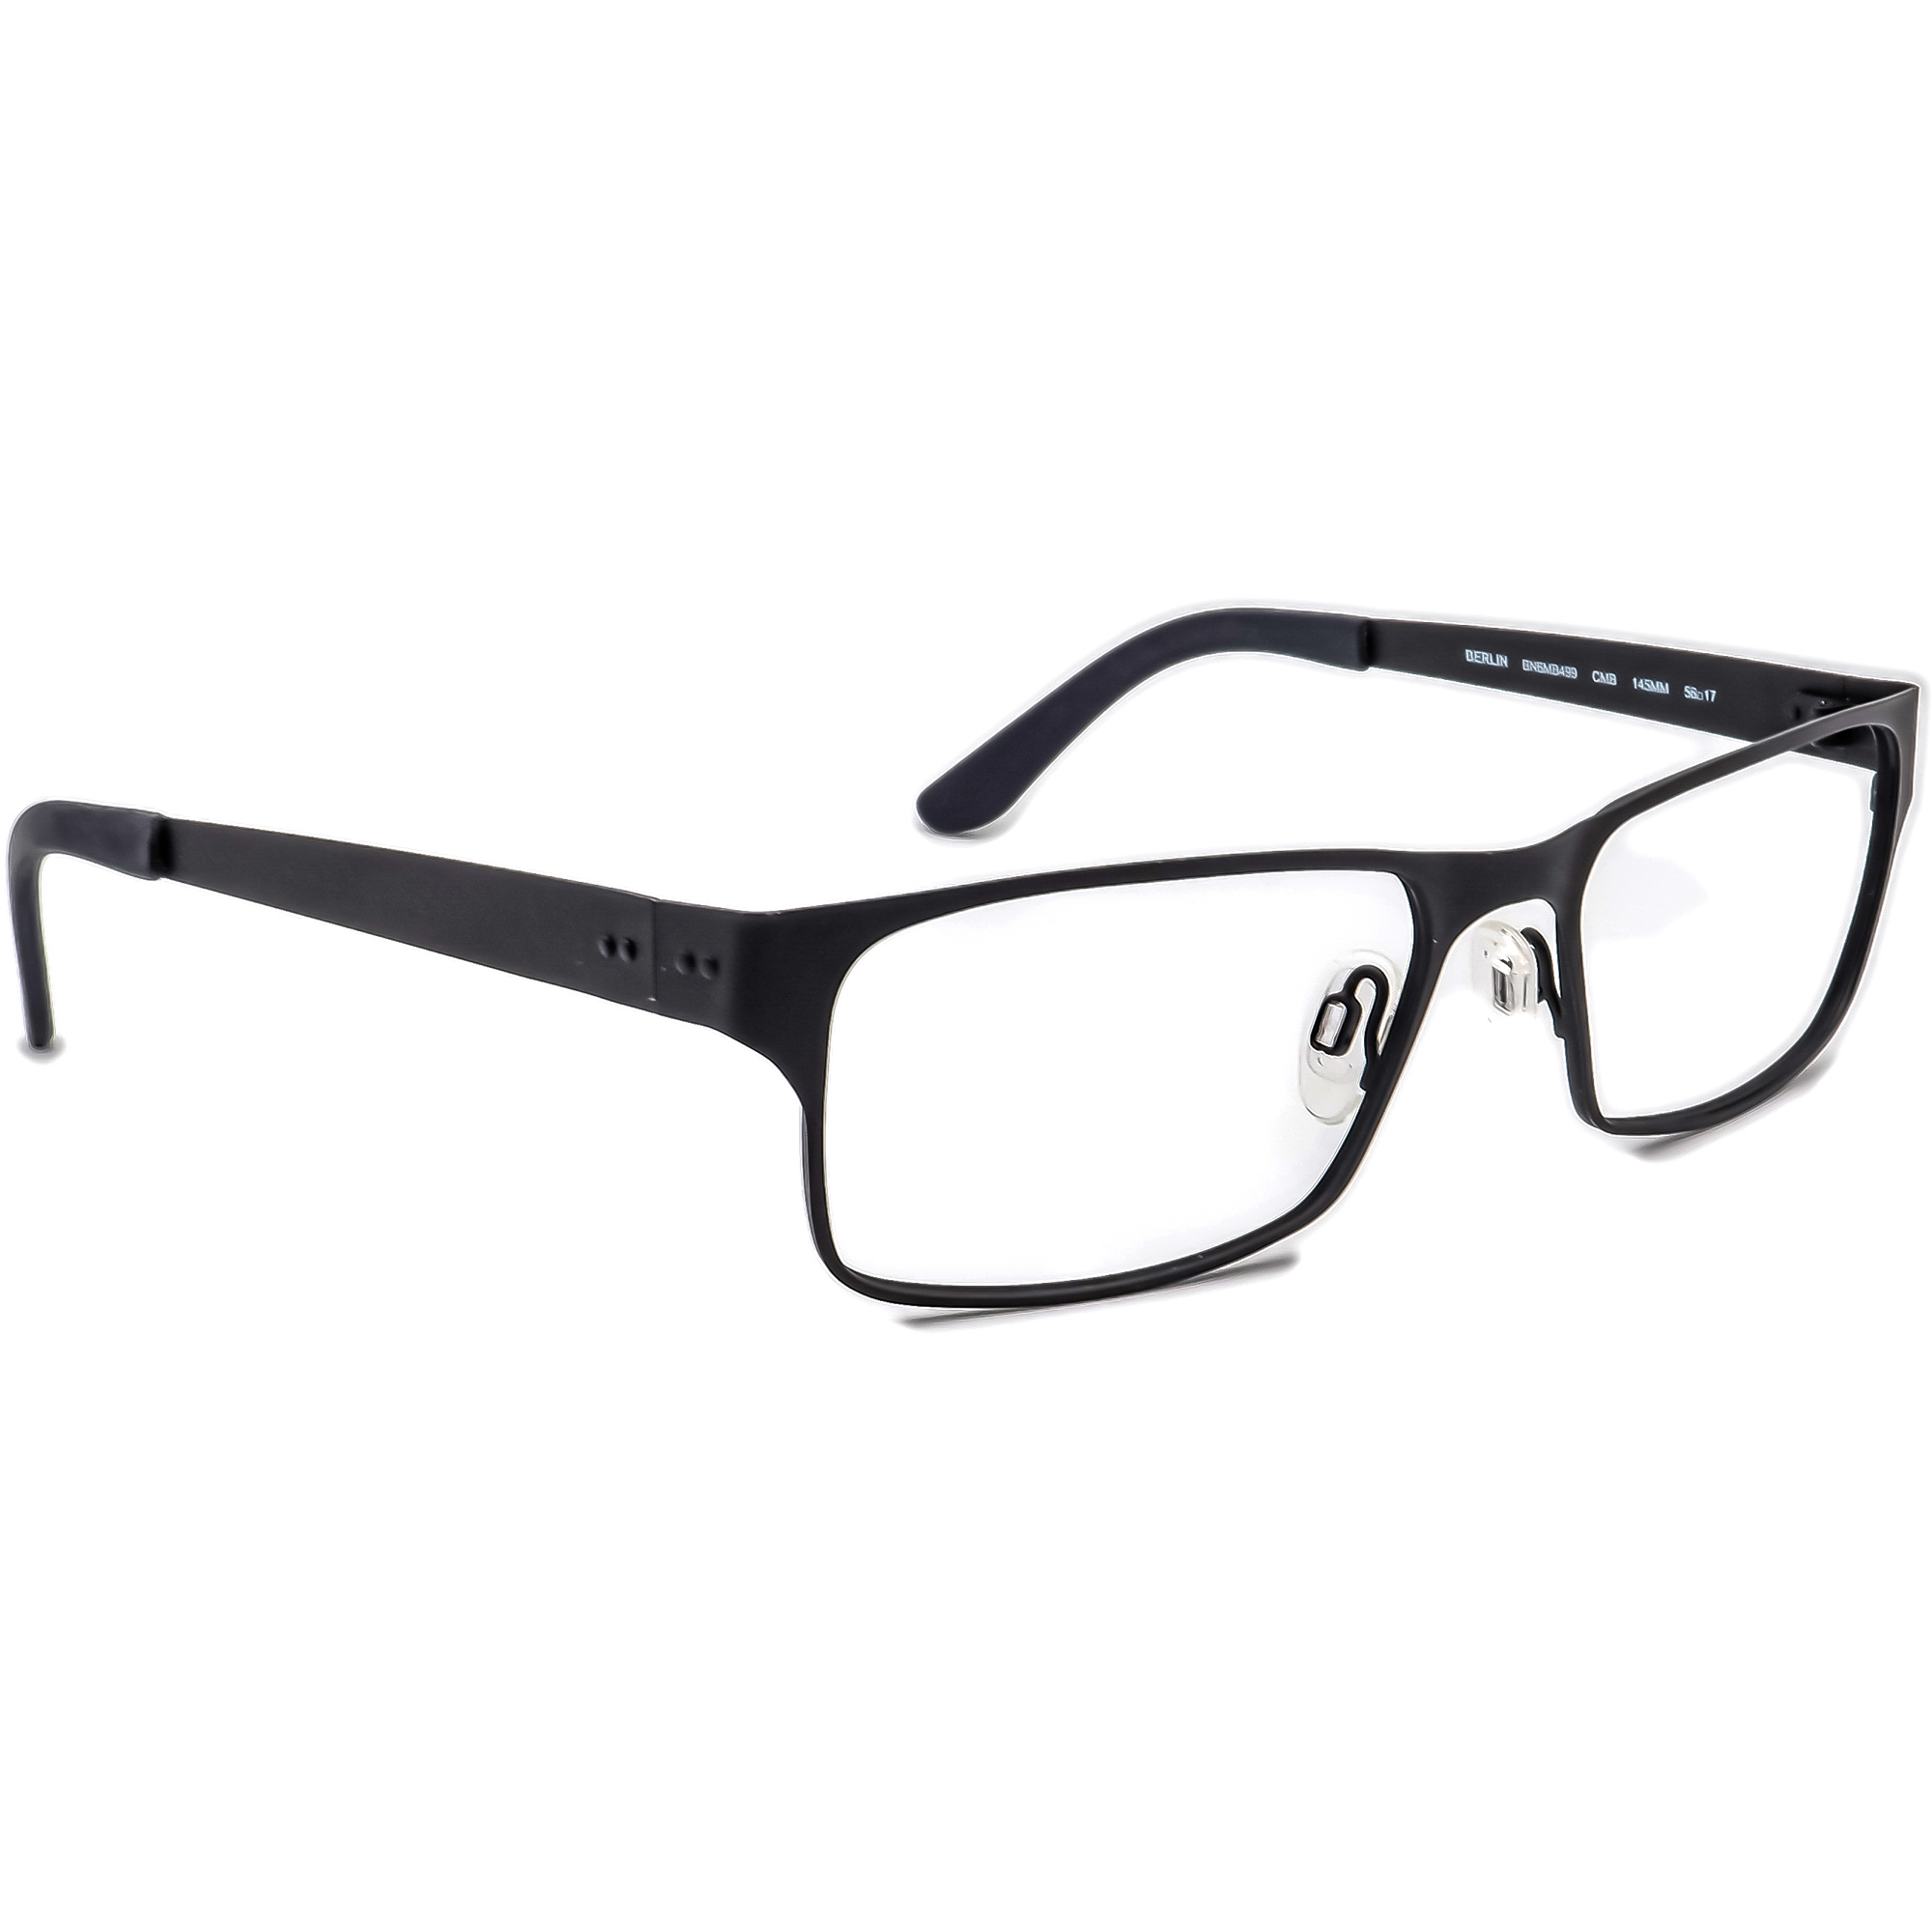 Randolph Engineering Berlin BN6MB499 CMB Eyeglasses